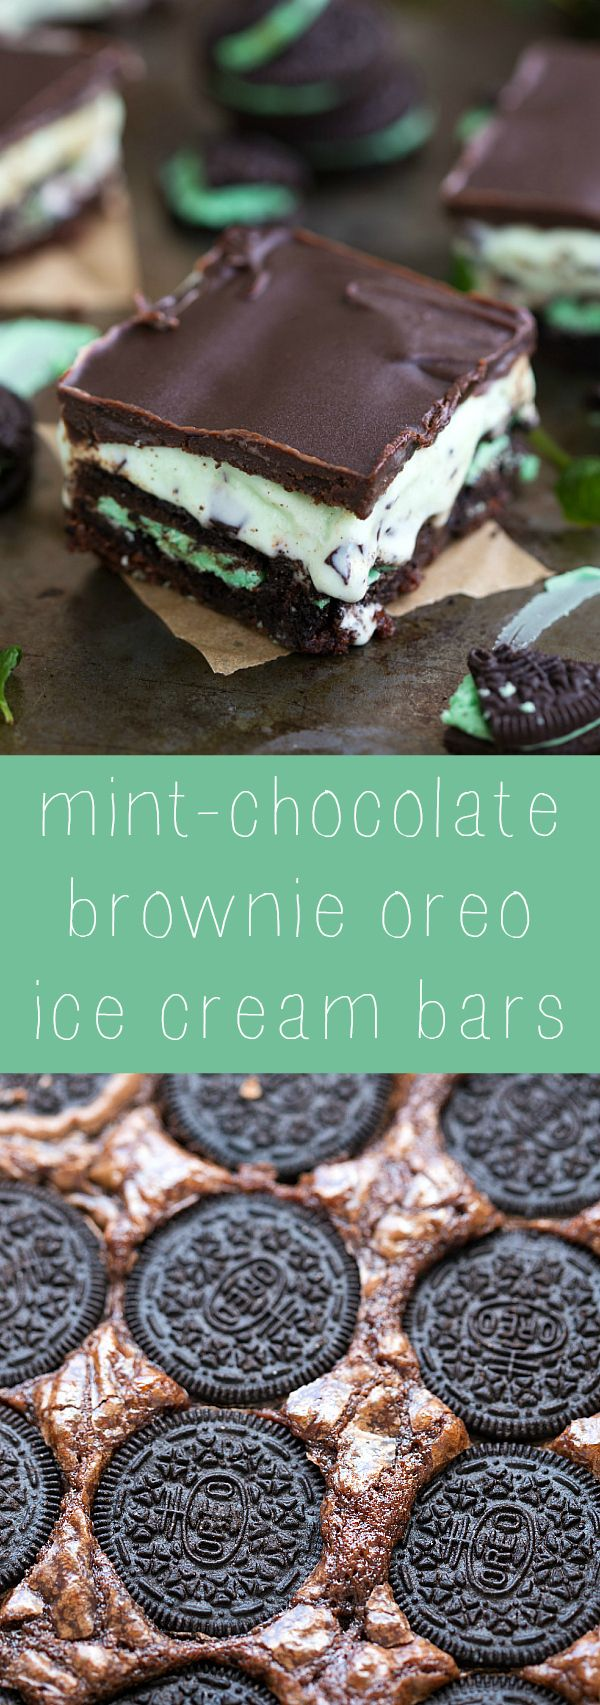 Super simple 5-ingredient mint-chocolate brownie oreo ice cream bars